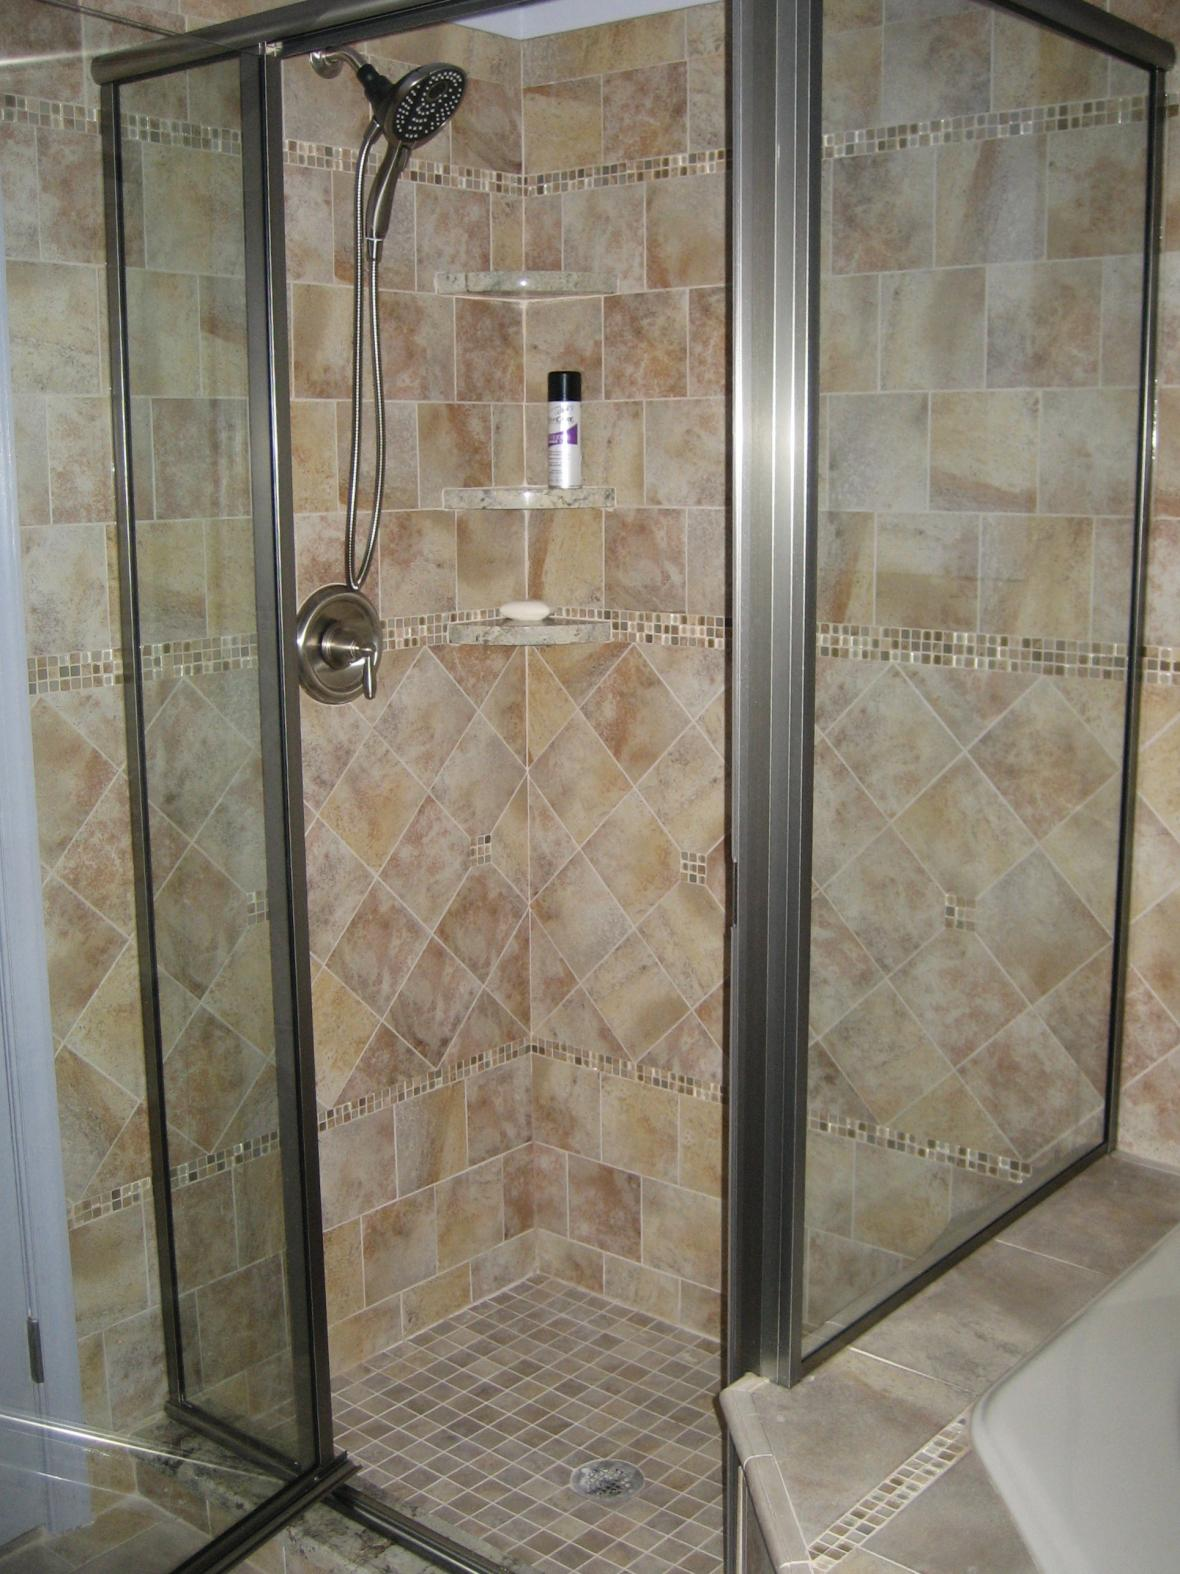 30 Pictures Of Porcelain Tile For Shower Floor